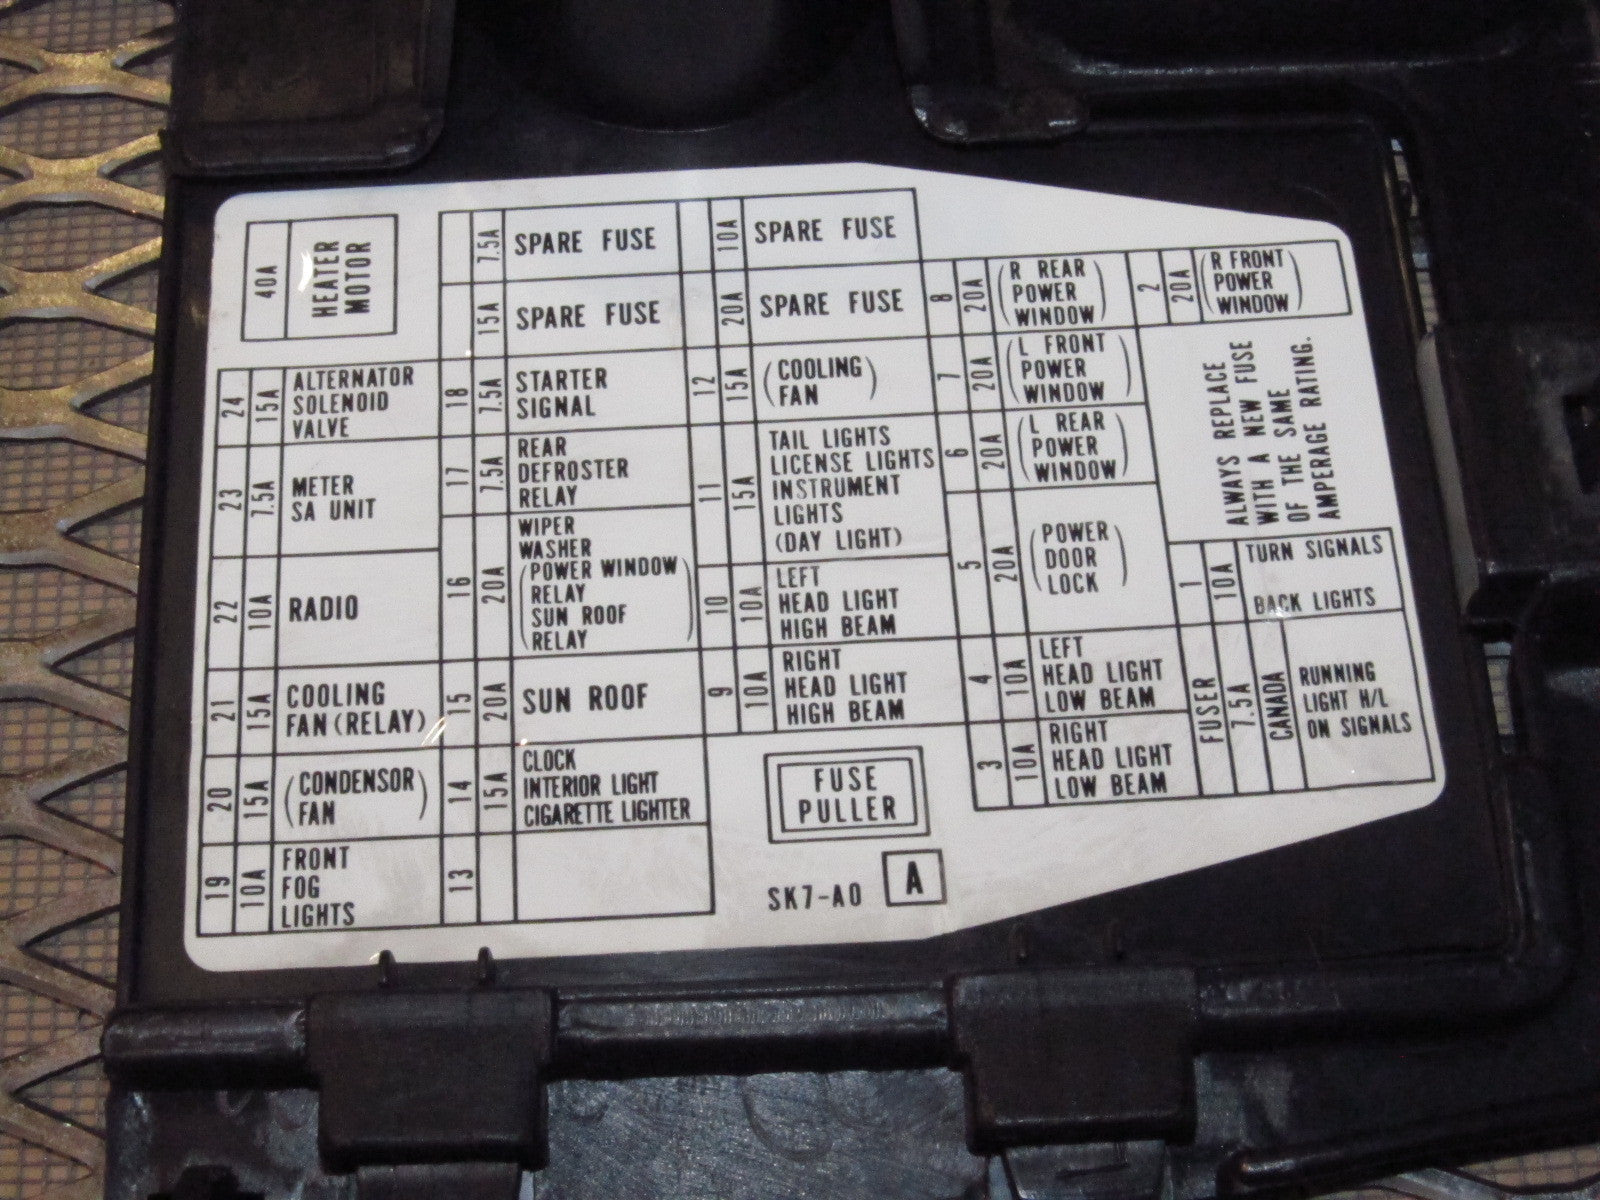 🏆 [DIAGRAM in Pictures Database] 2001 Integra Fuse Box Just Download or  Read Fuse Box - LAURA.AZENARD.WIRING.ONYXUM.COMComplete Diagram Picture Database - Onyxum.com